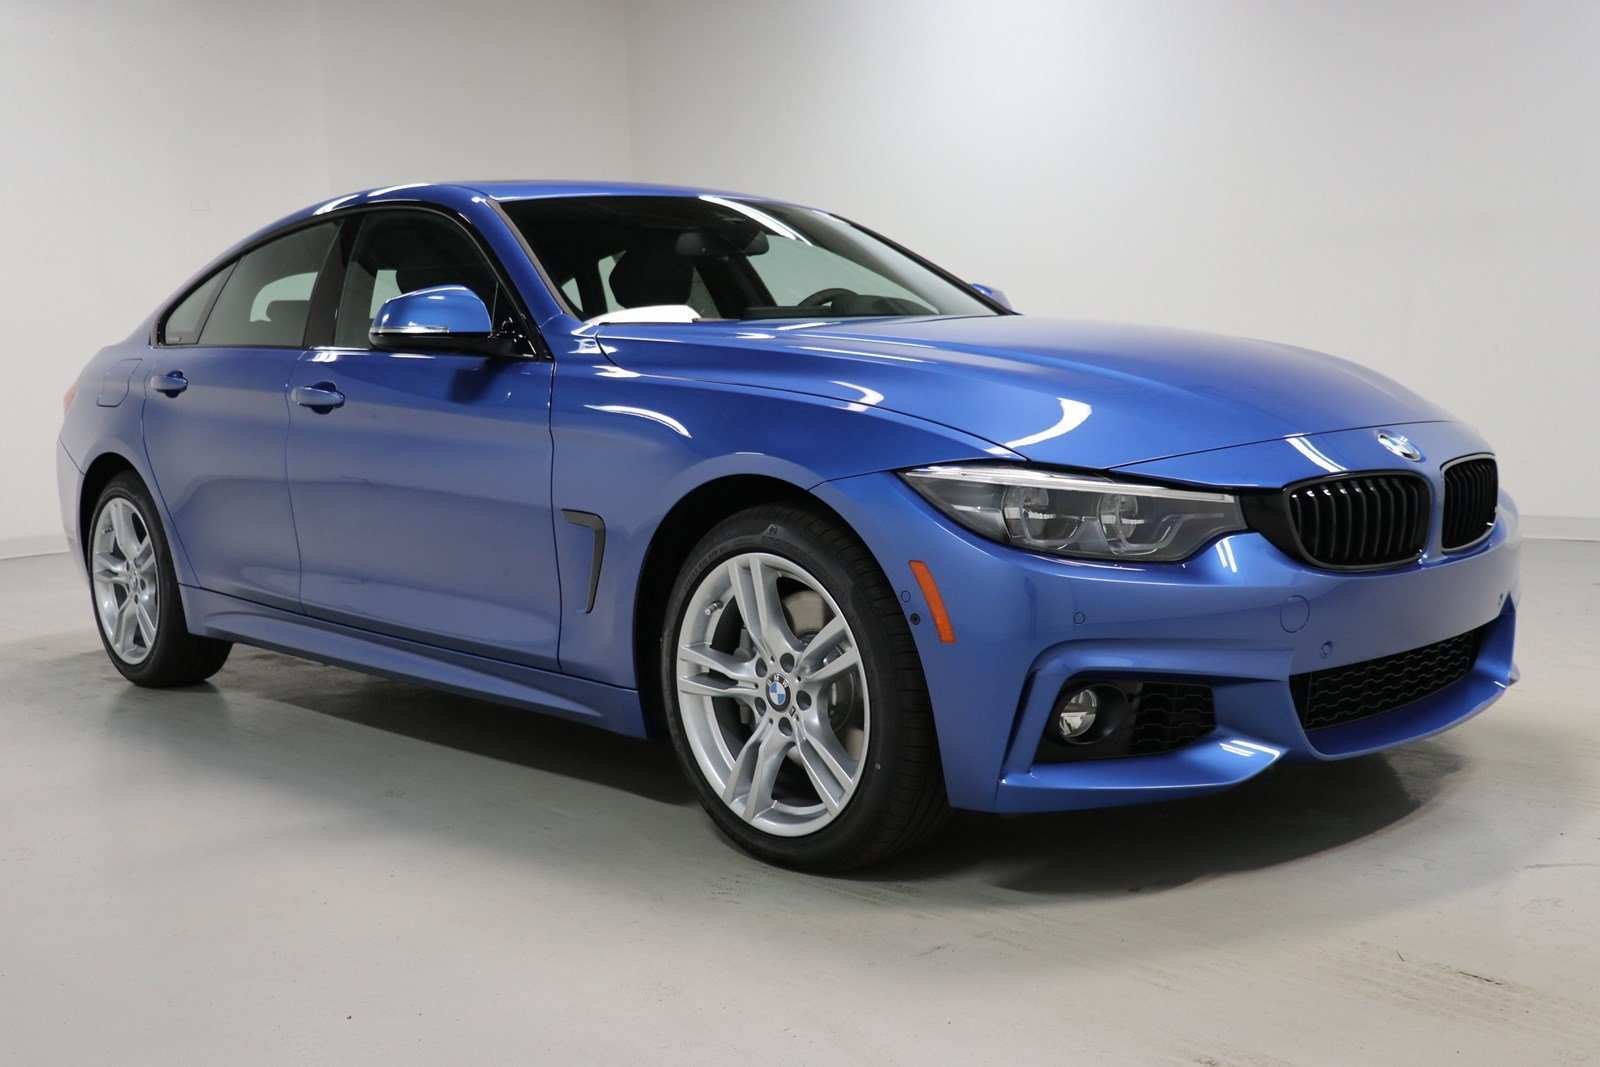 75 Best Review 2019 Bmw 440I Xdrive Gran Coupe Images for 2019 Bmw 440I Xdrive Gran Coupe